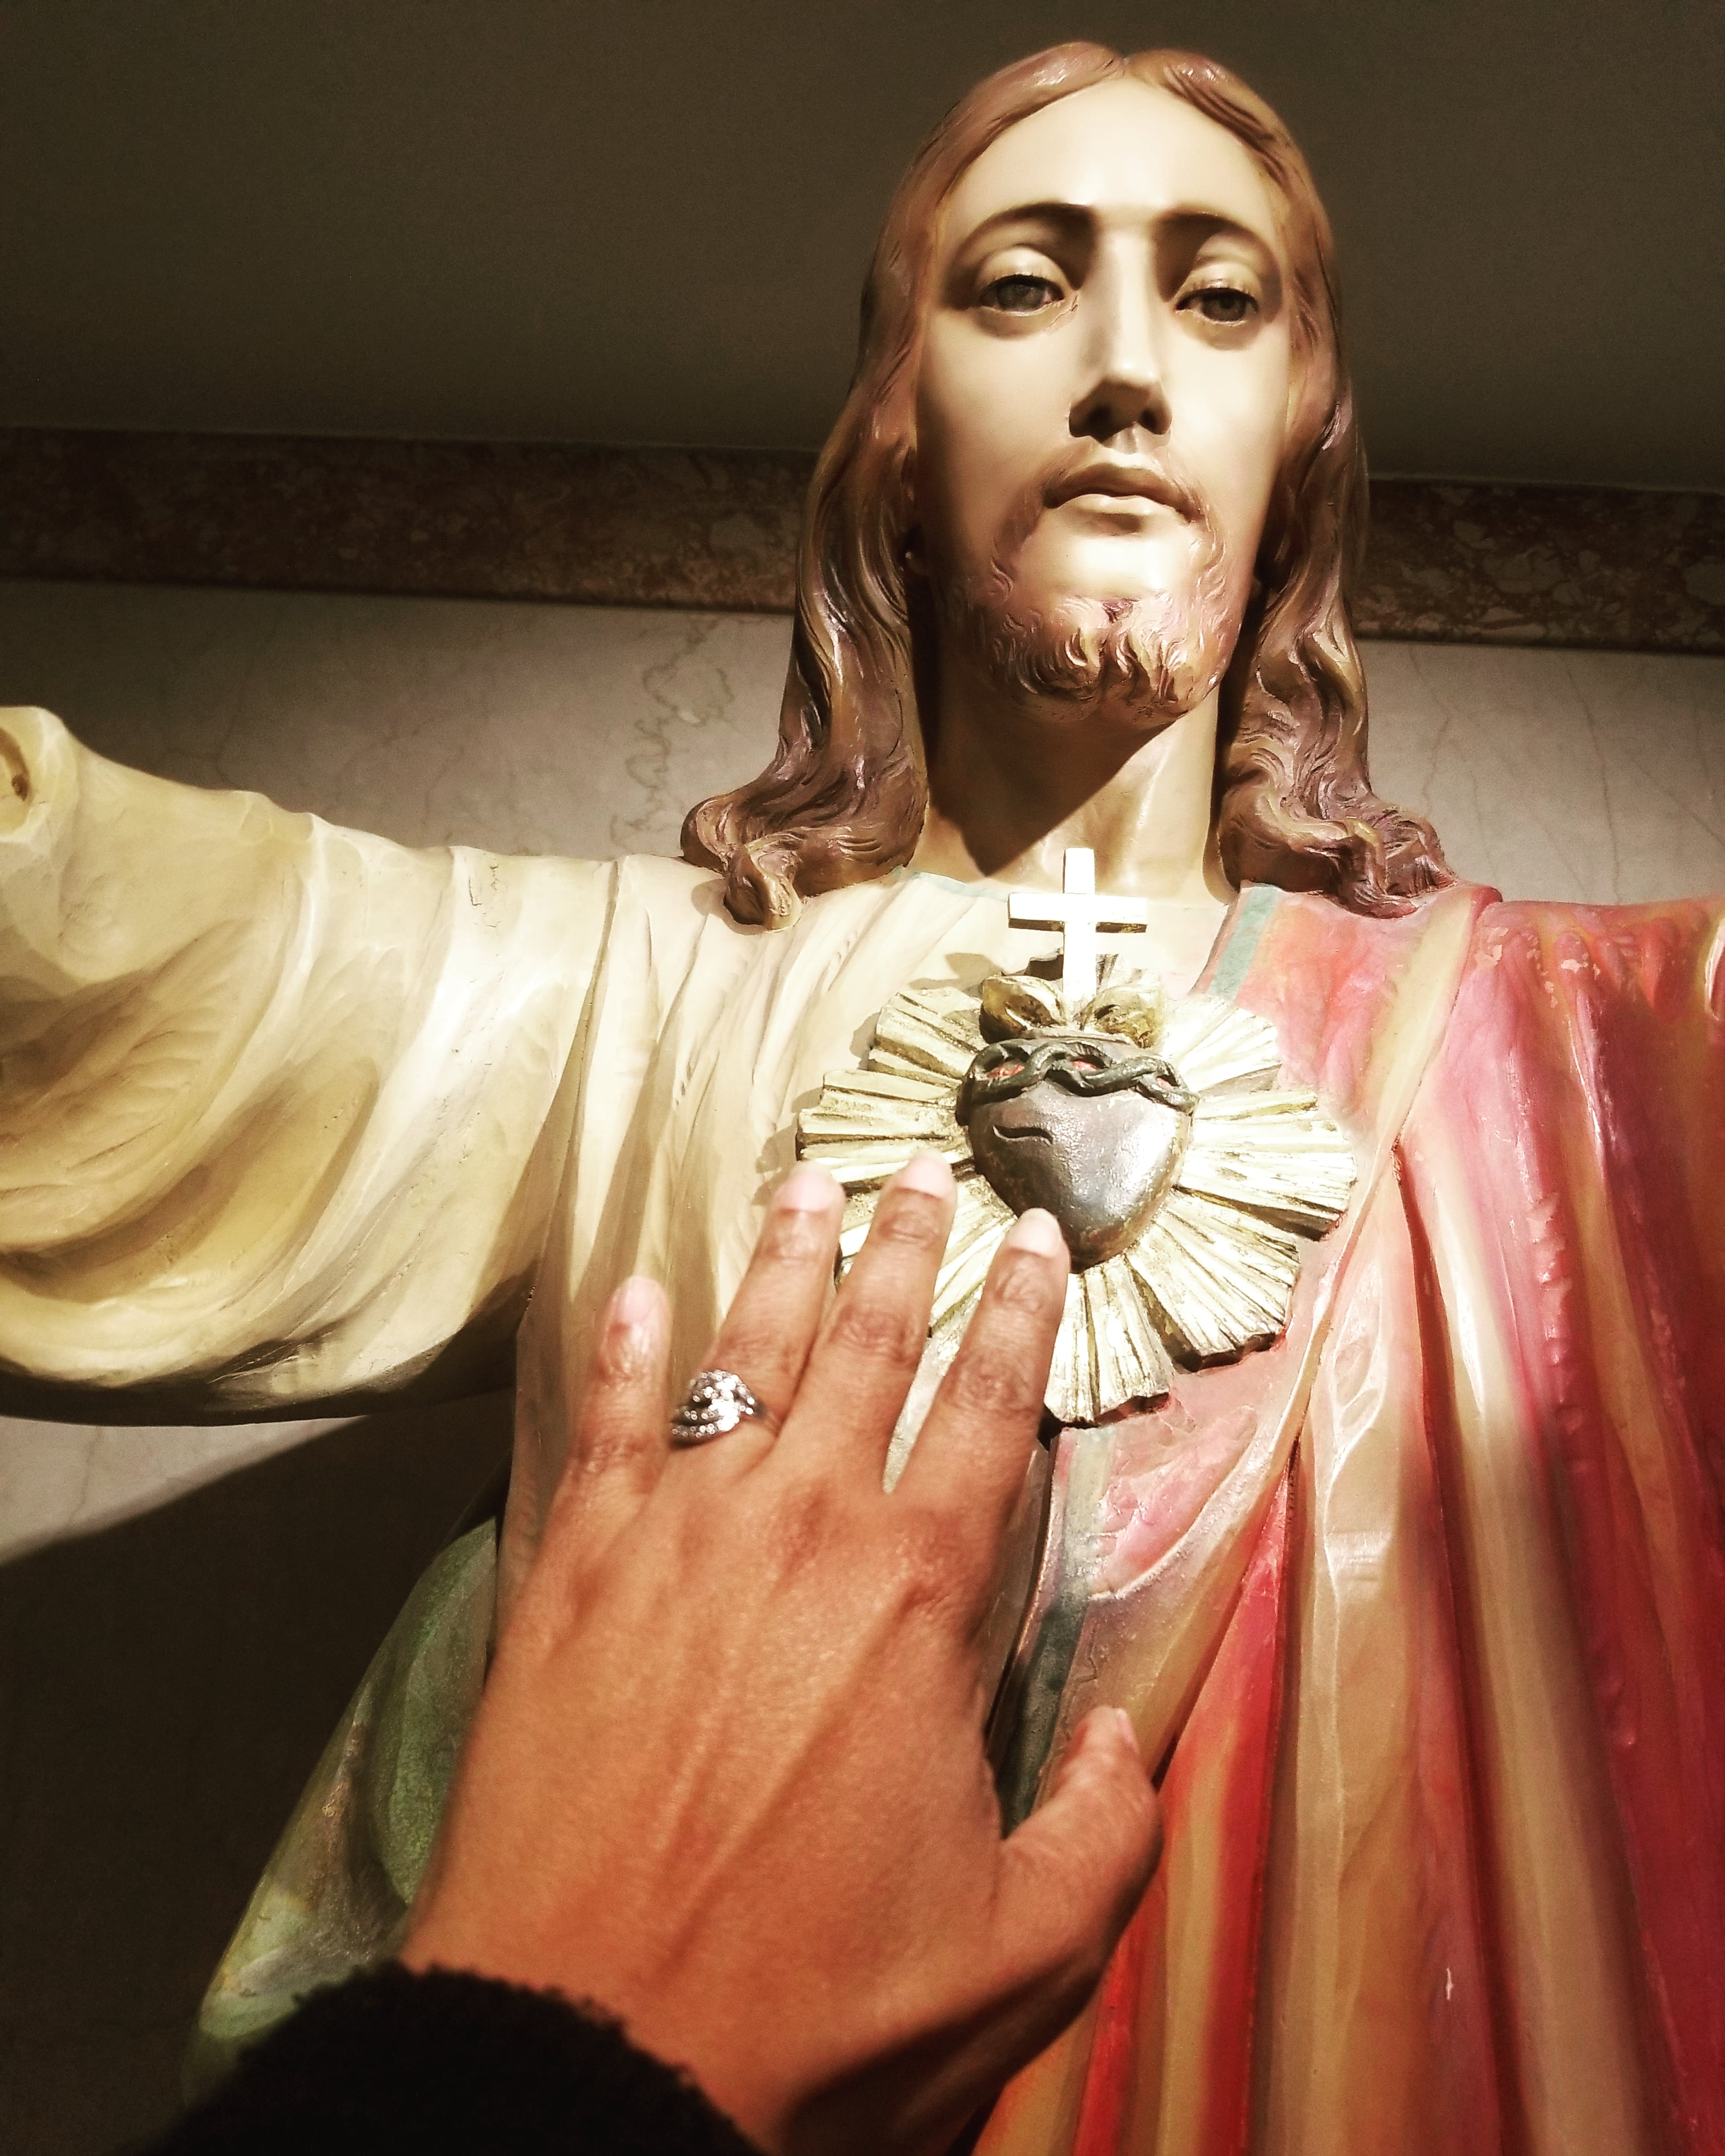 woman's hand touching Sacred Heart of Jesus statue